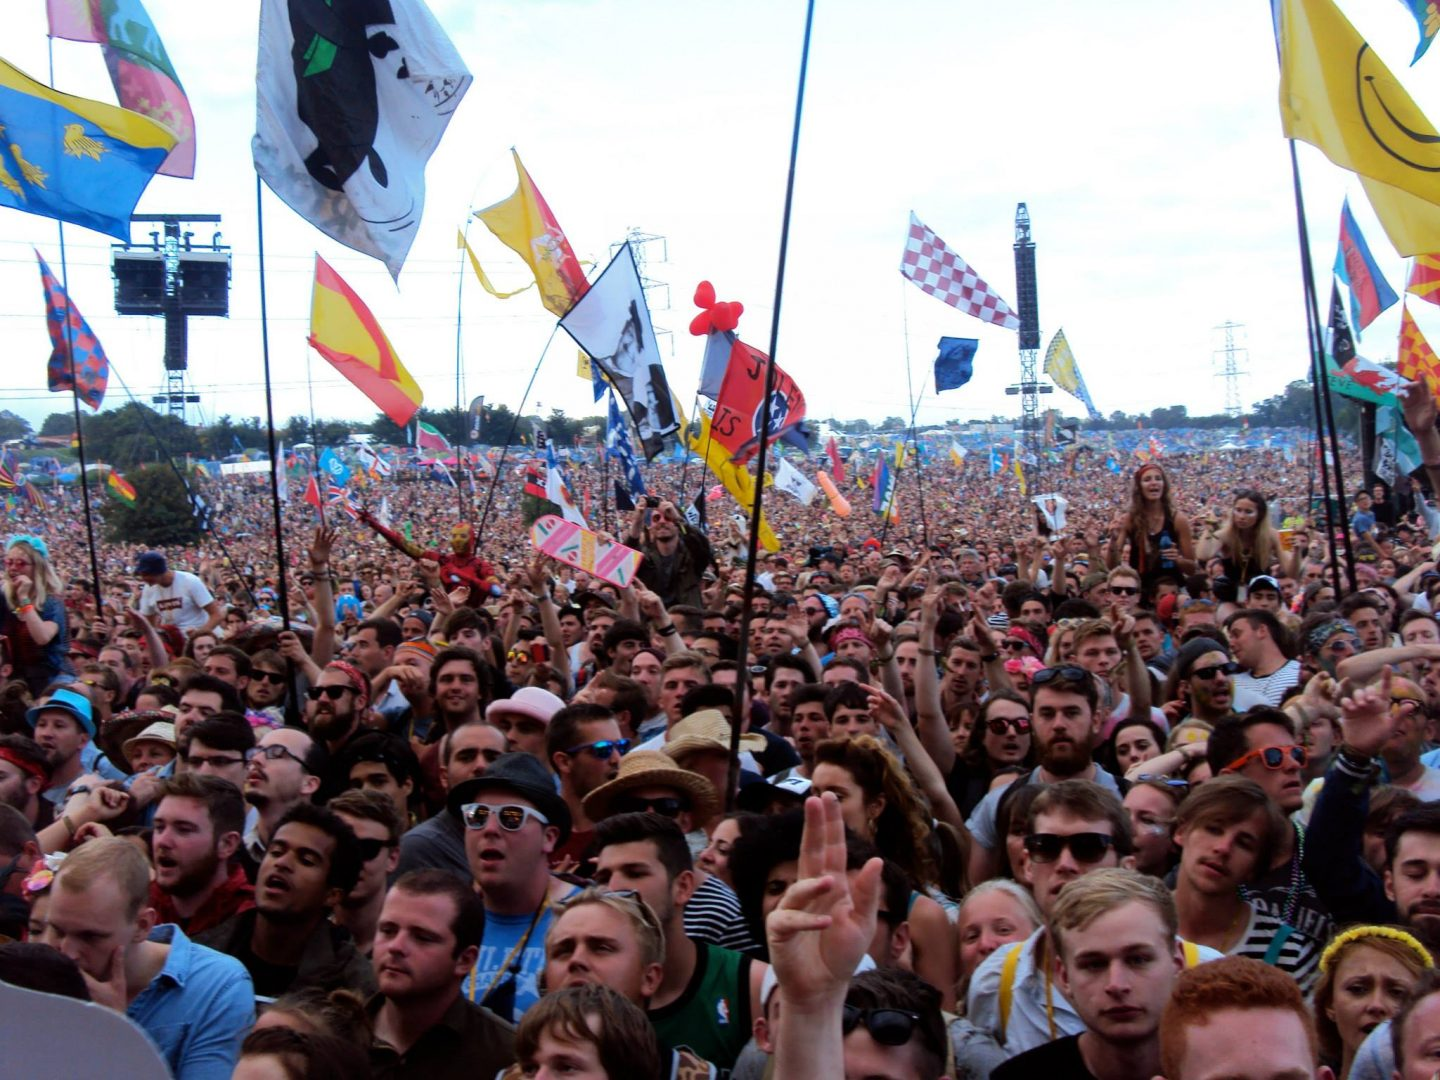 The crowd at Glastonbury Festival's Pyramid Stage